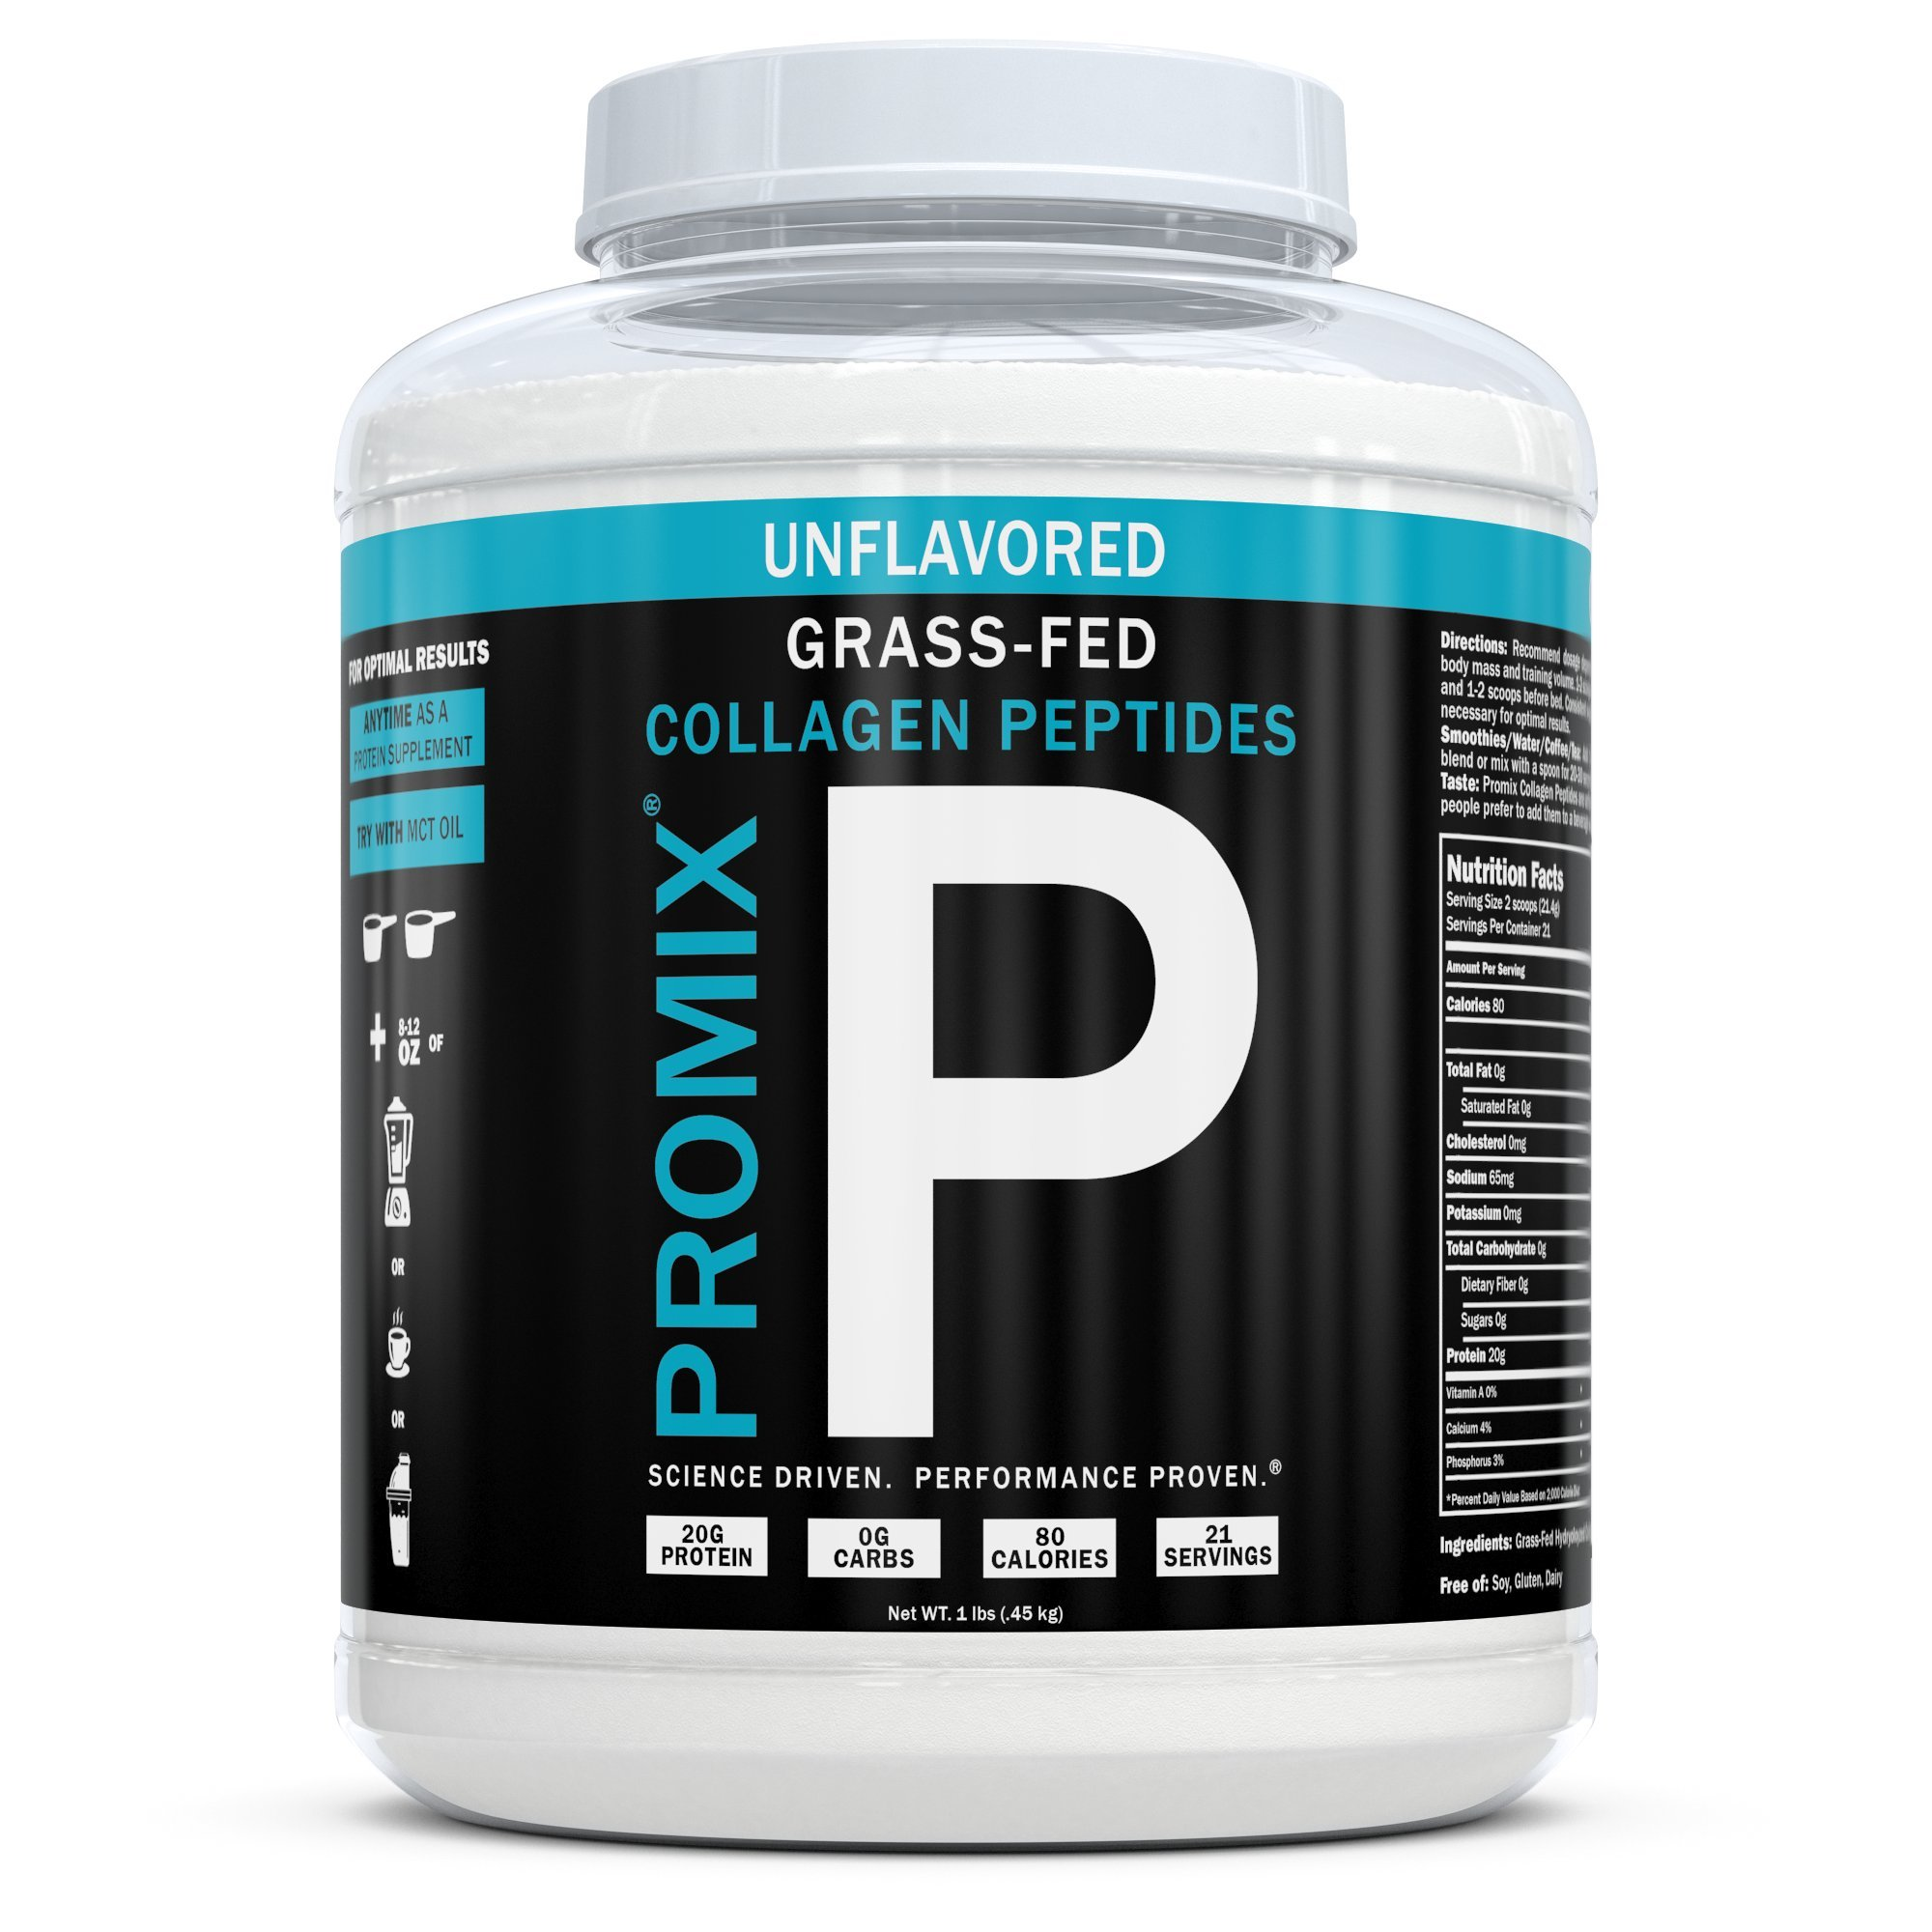 ProMix Nutrition Pasture-Raised, Grass-Fed Collagen Peptides, Unflavored, 21 Servings